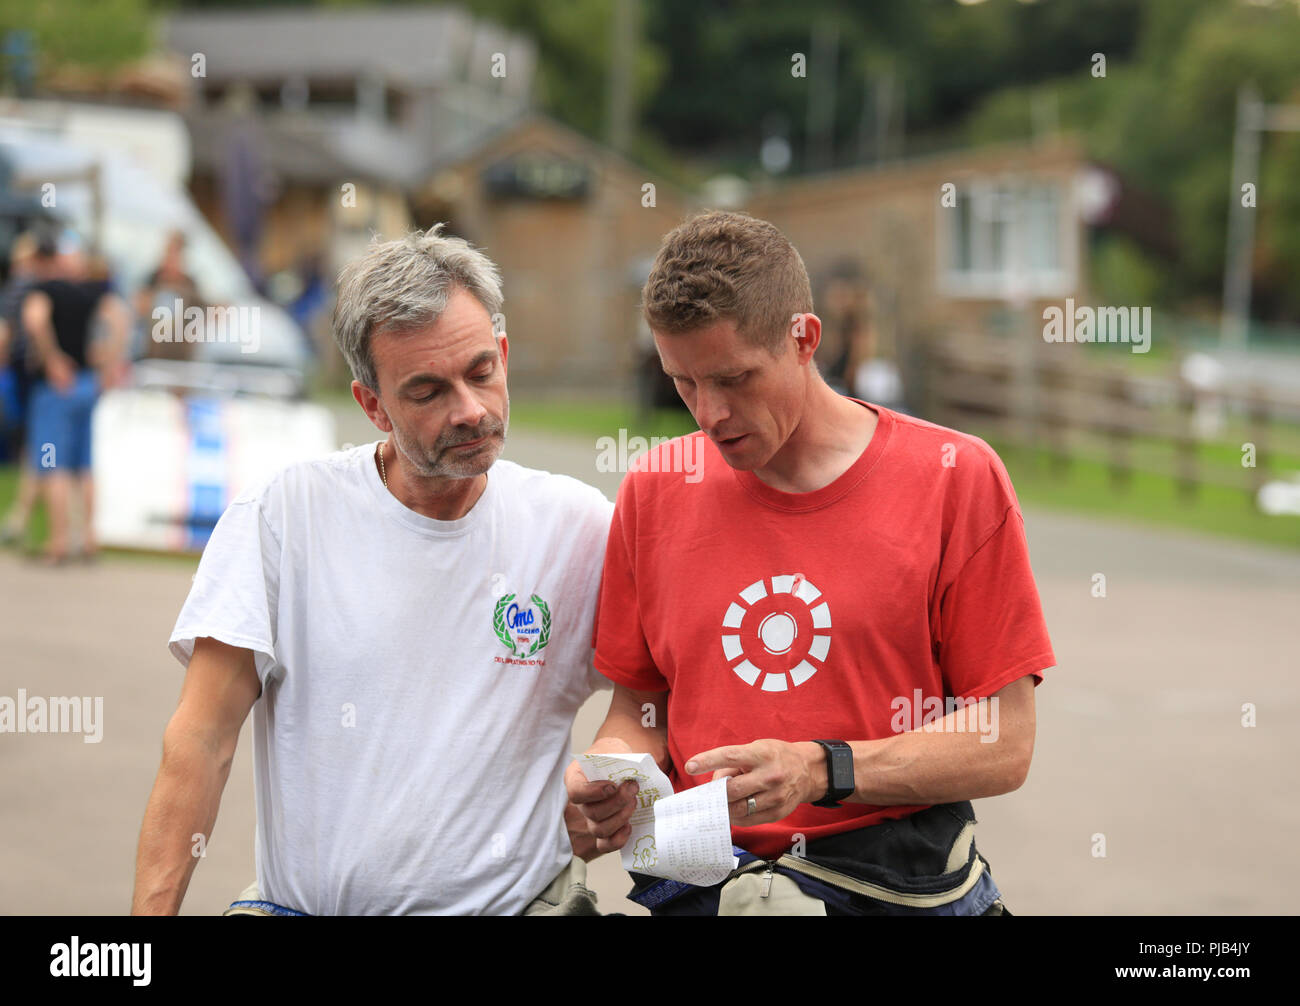 Trevor Willis (in white) three times British hill climb champion chats with 6 times British hill climb champion Scott Moran (in red). - Stock Image